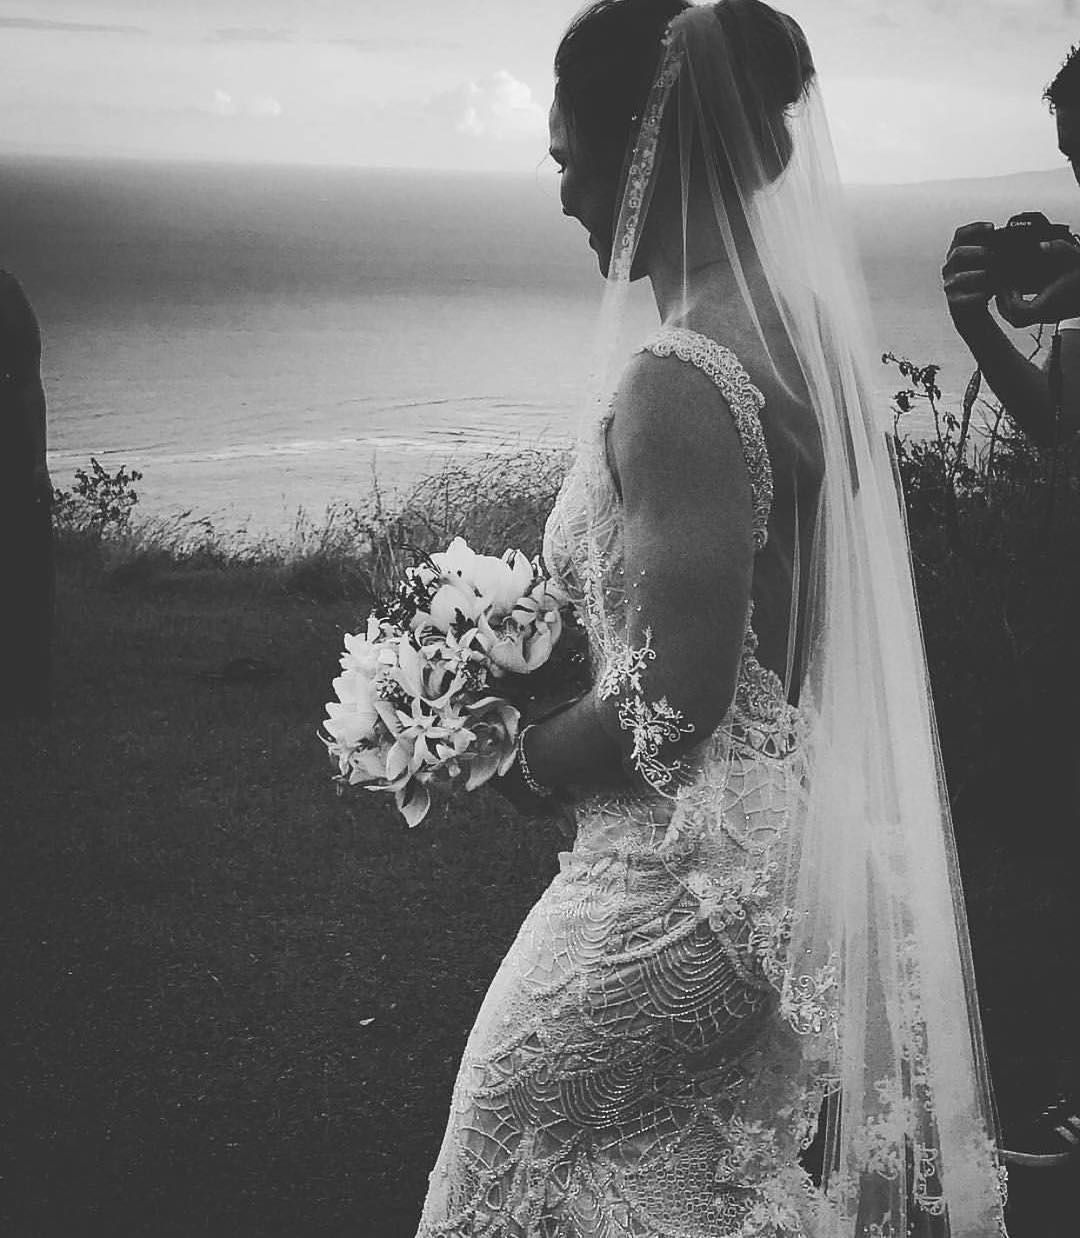 Pin By Fay On Ronda Rousey Ronda Rousey Ronda Rousey Married Wedding